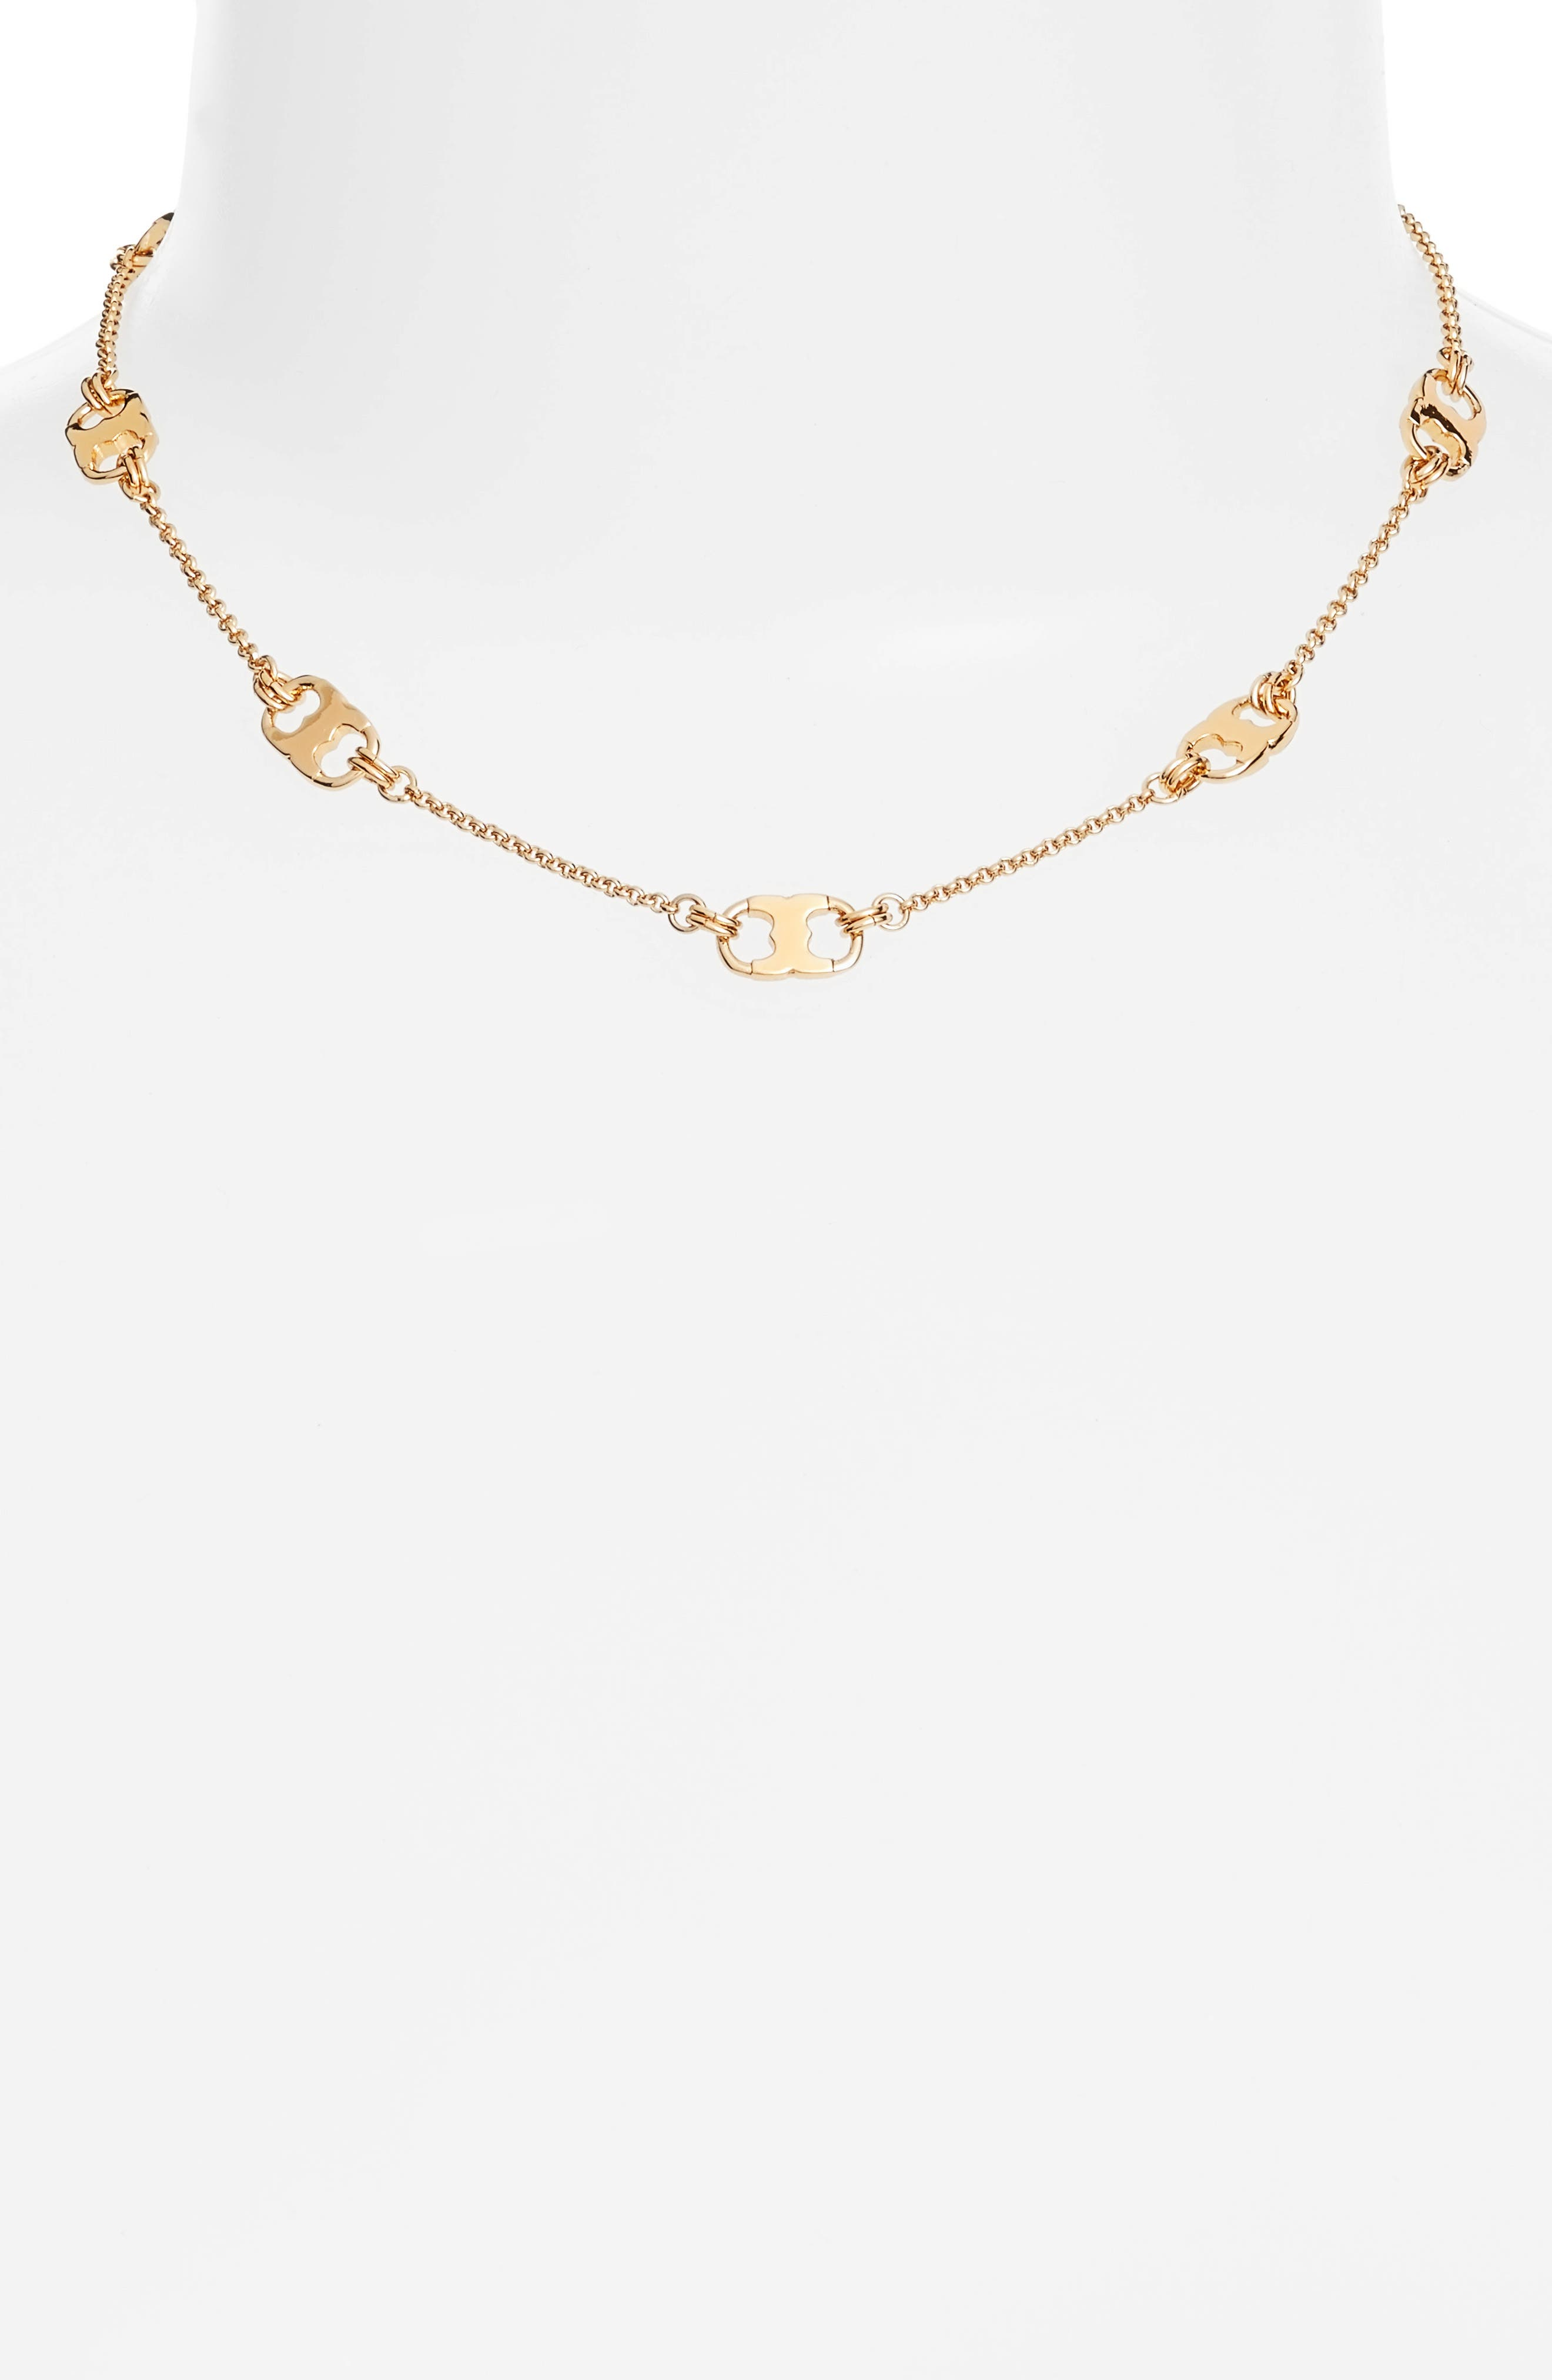 Tory Burch Gemini Link Station Necklace